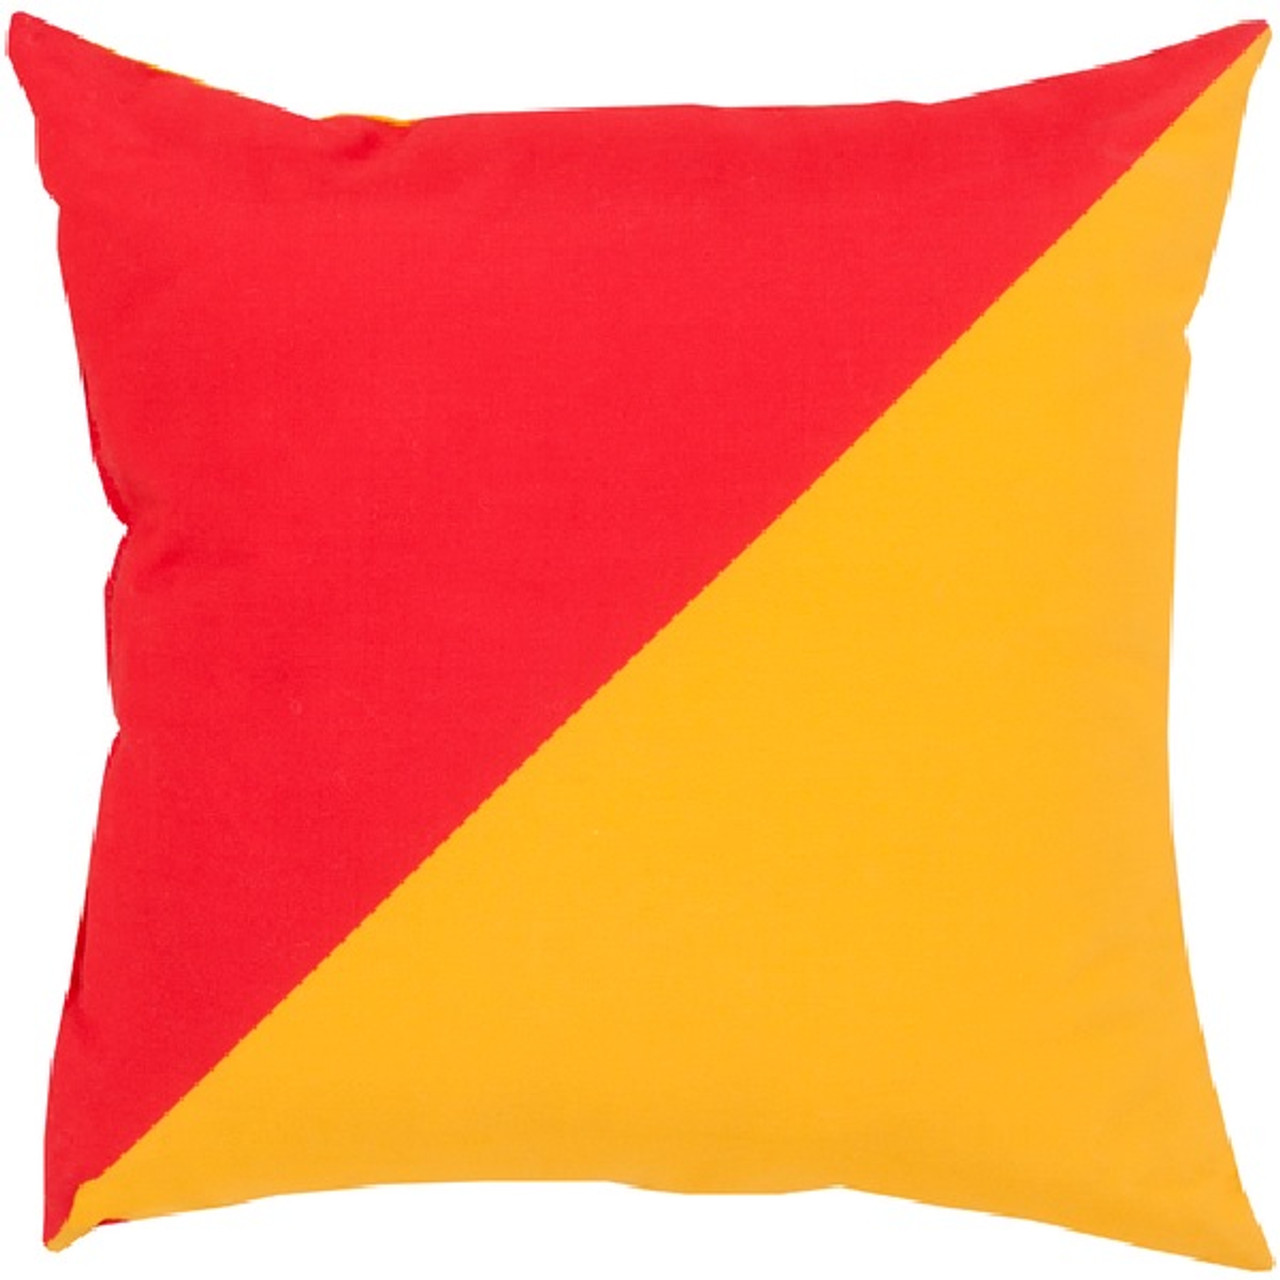 Red And Orange Decorative Pillows : 18